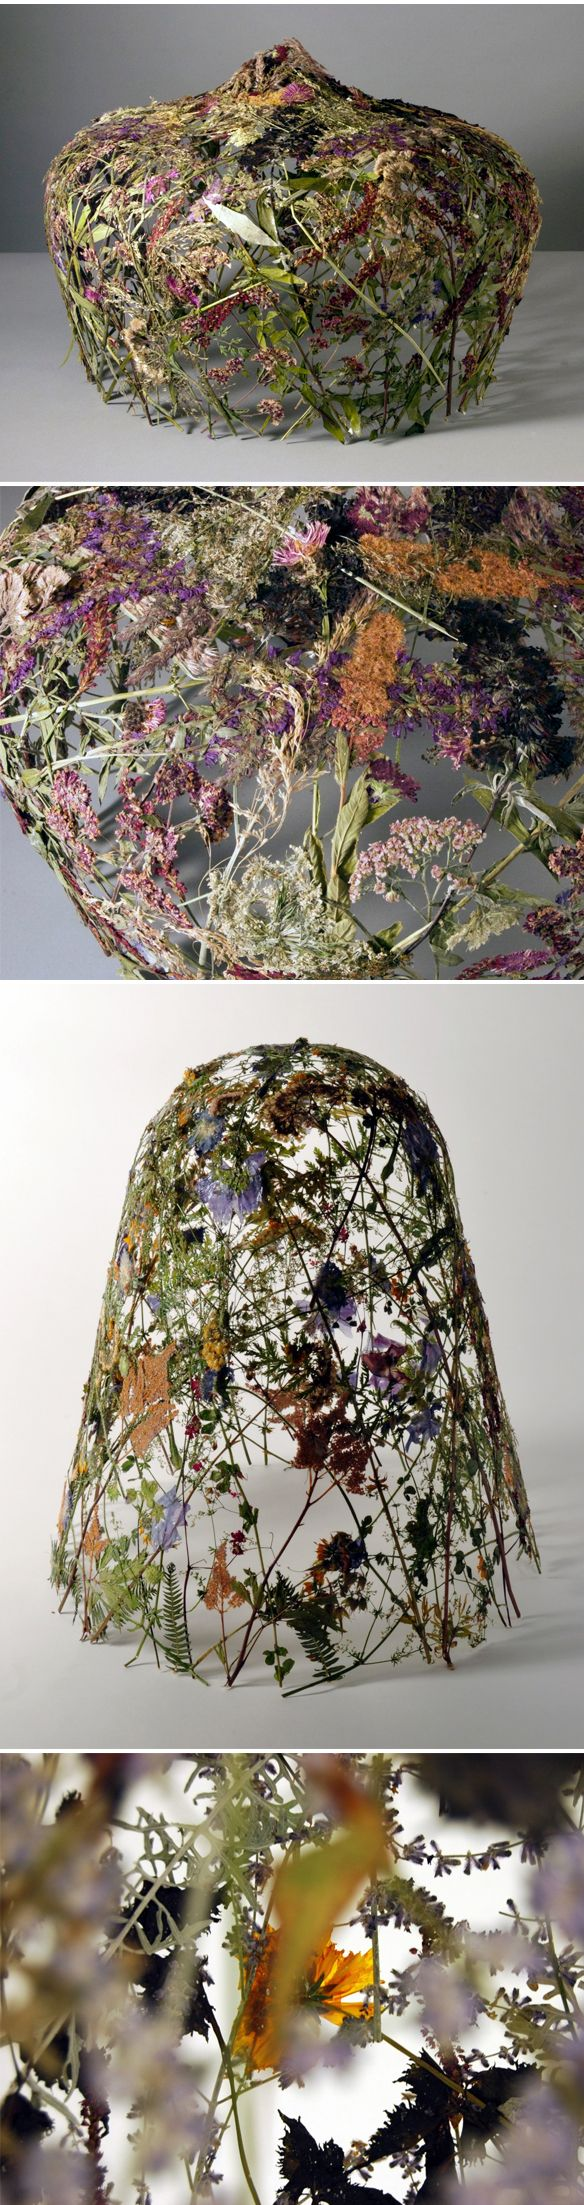 Ignacio Canales Aracil - pressed flower sculptures <3